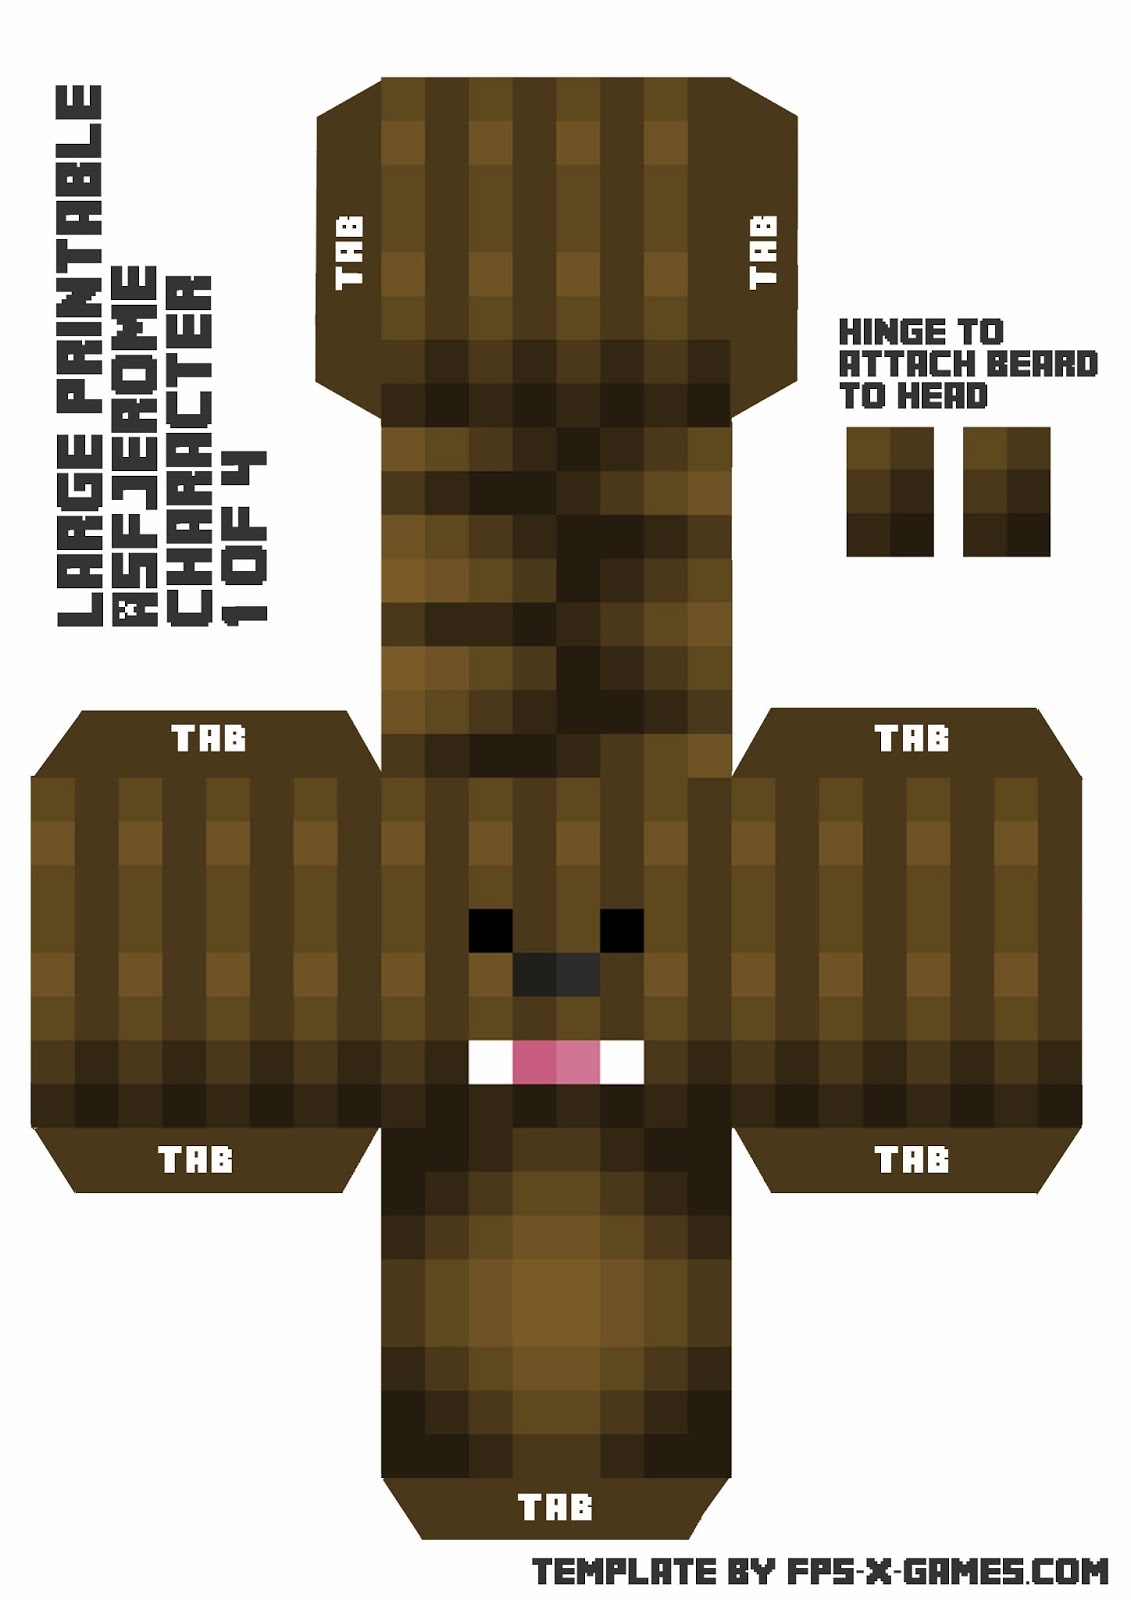 Large ASFJerome Printable Papercraft Character 1 of 4